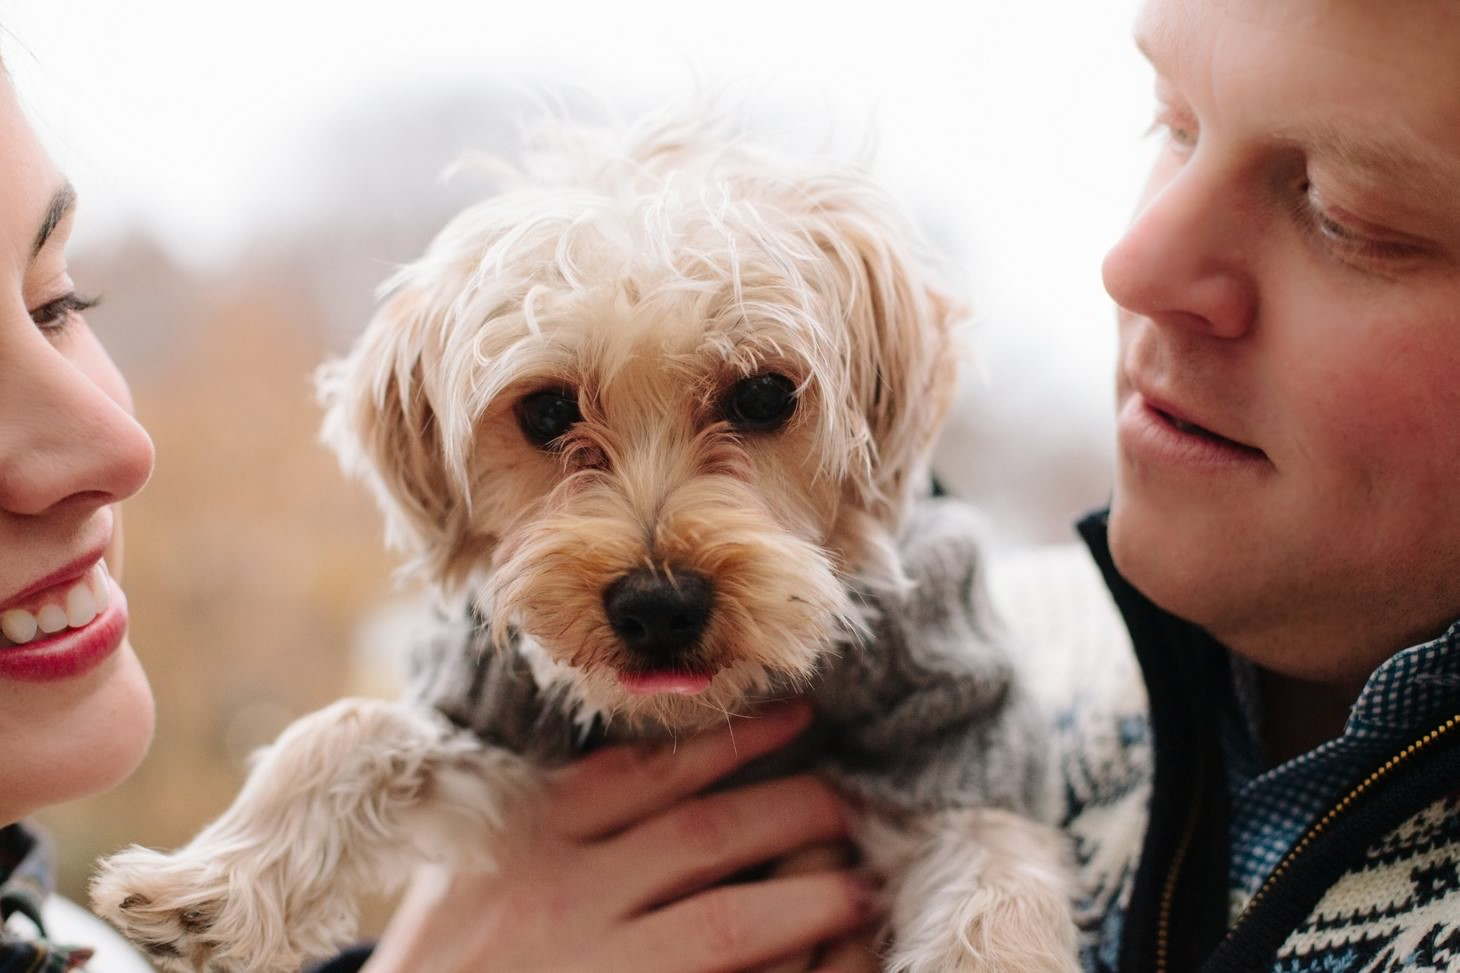 024-nyc-wedding-photographer-puppy-holiday-mini-session-fall-central-park.jpg